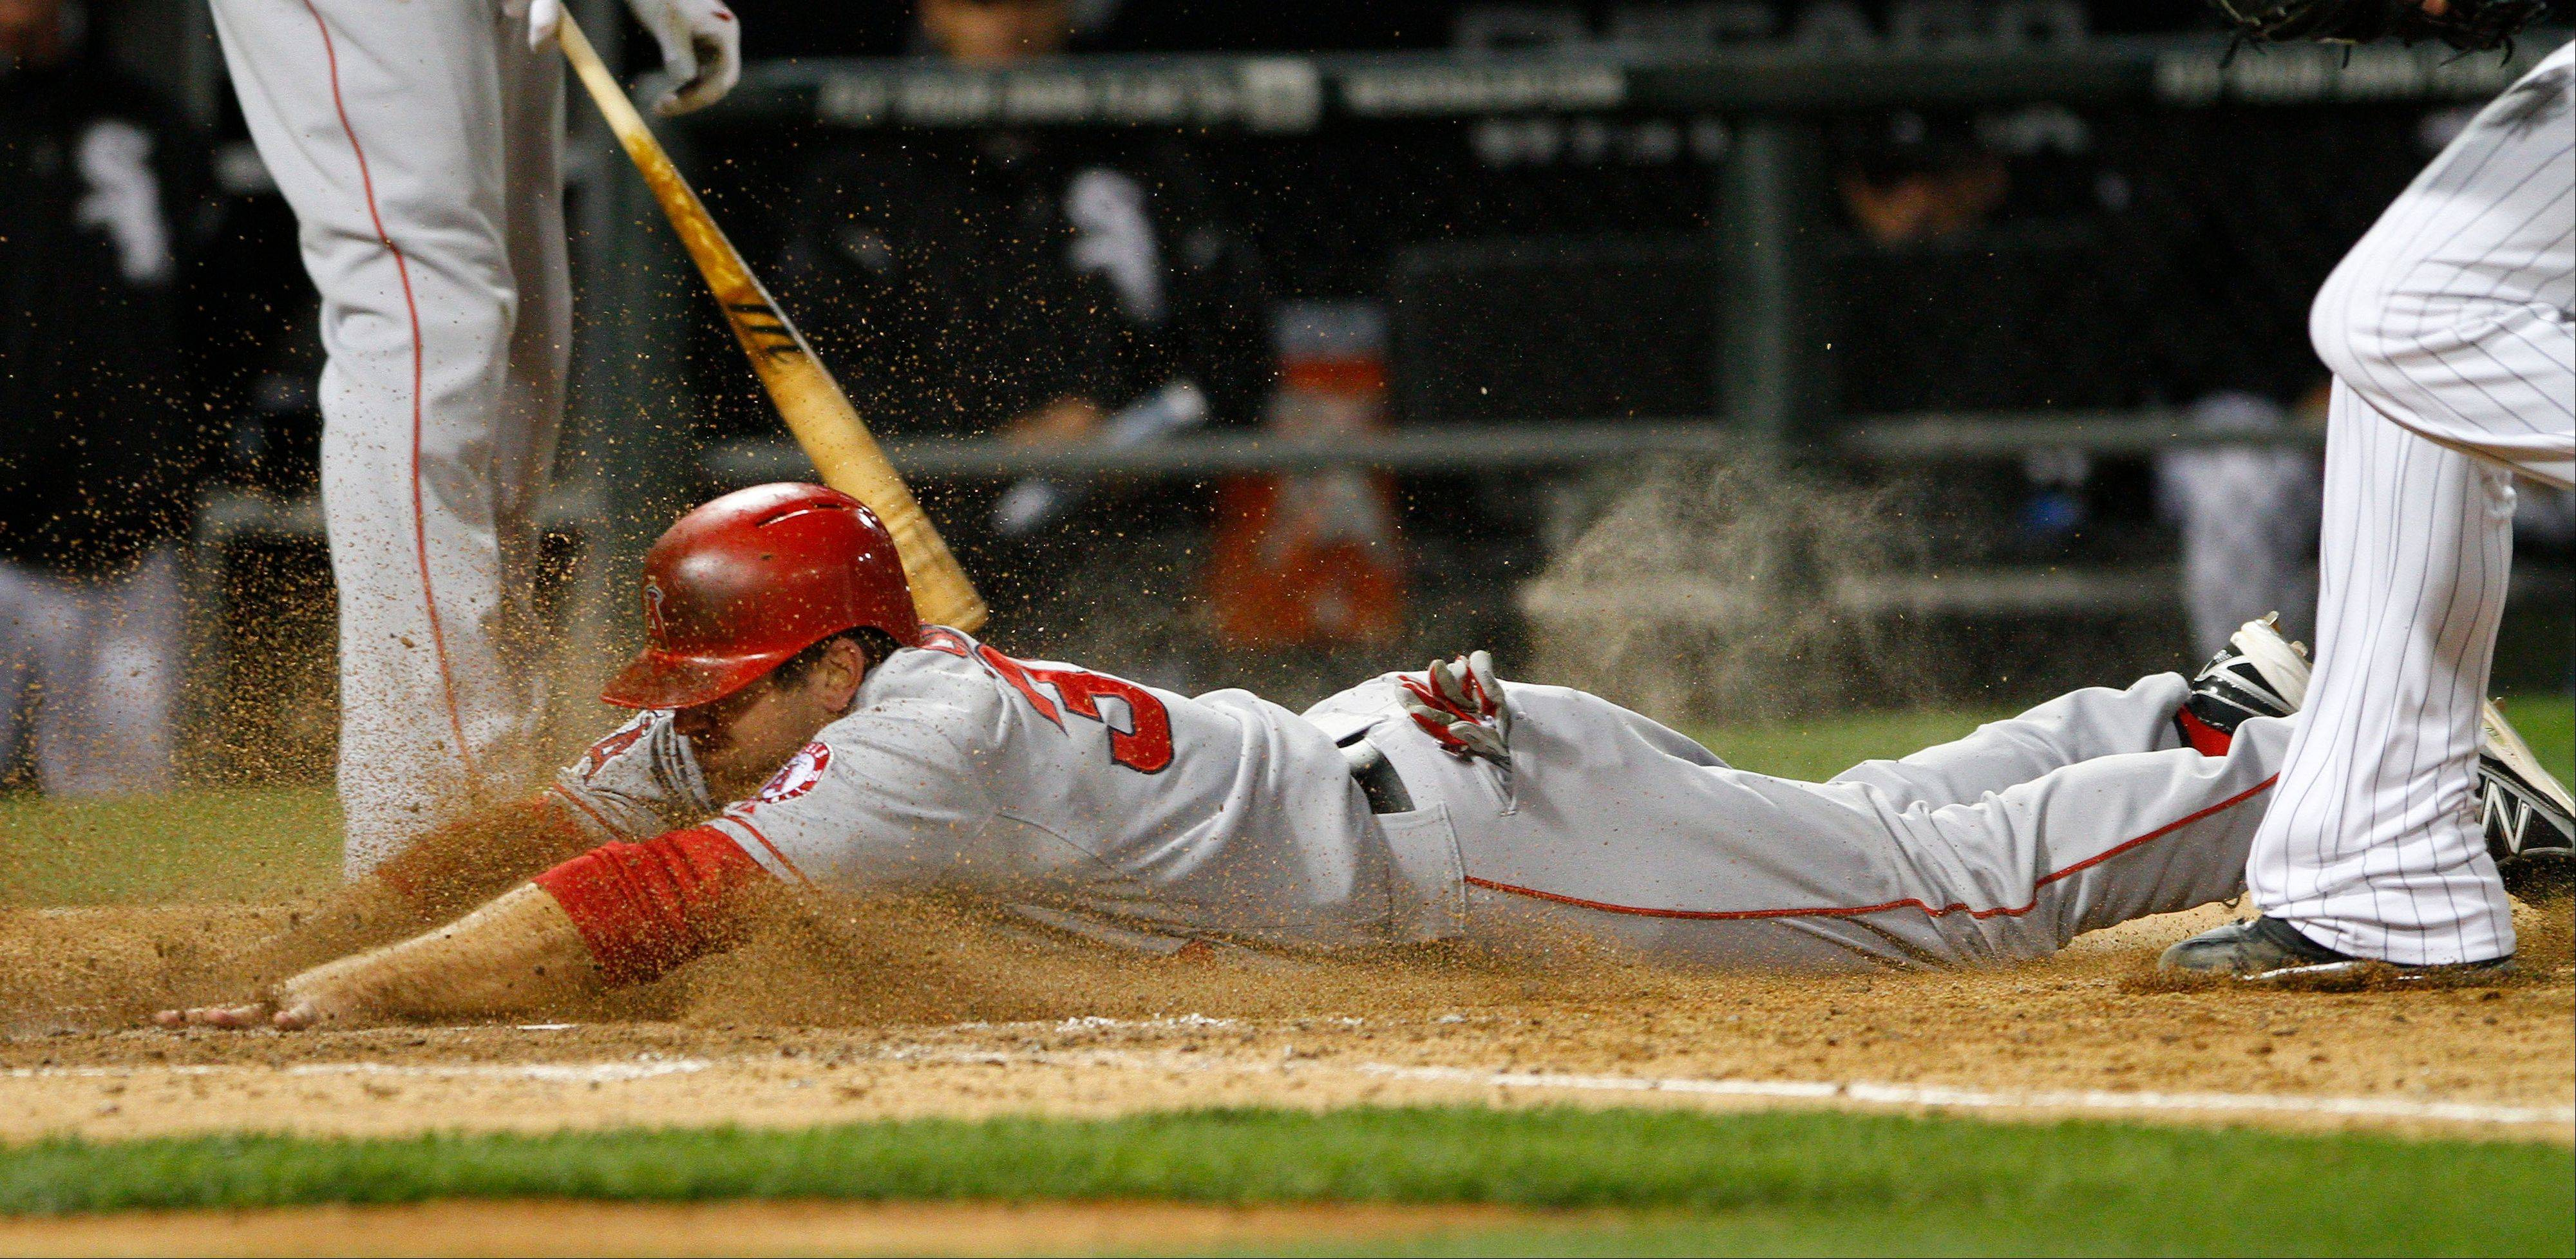 Los Angeles Angels' J.B. Shuck dives across home plate after a passed ball in the seventh inning against the White Sox in a baseball game in Chicago on Friday, May 10, 2013.